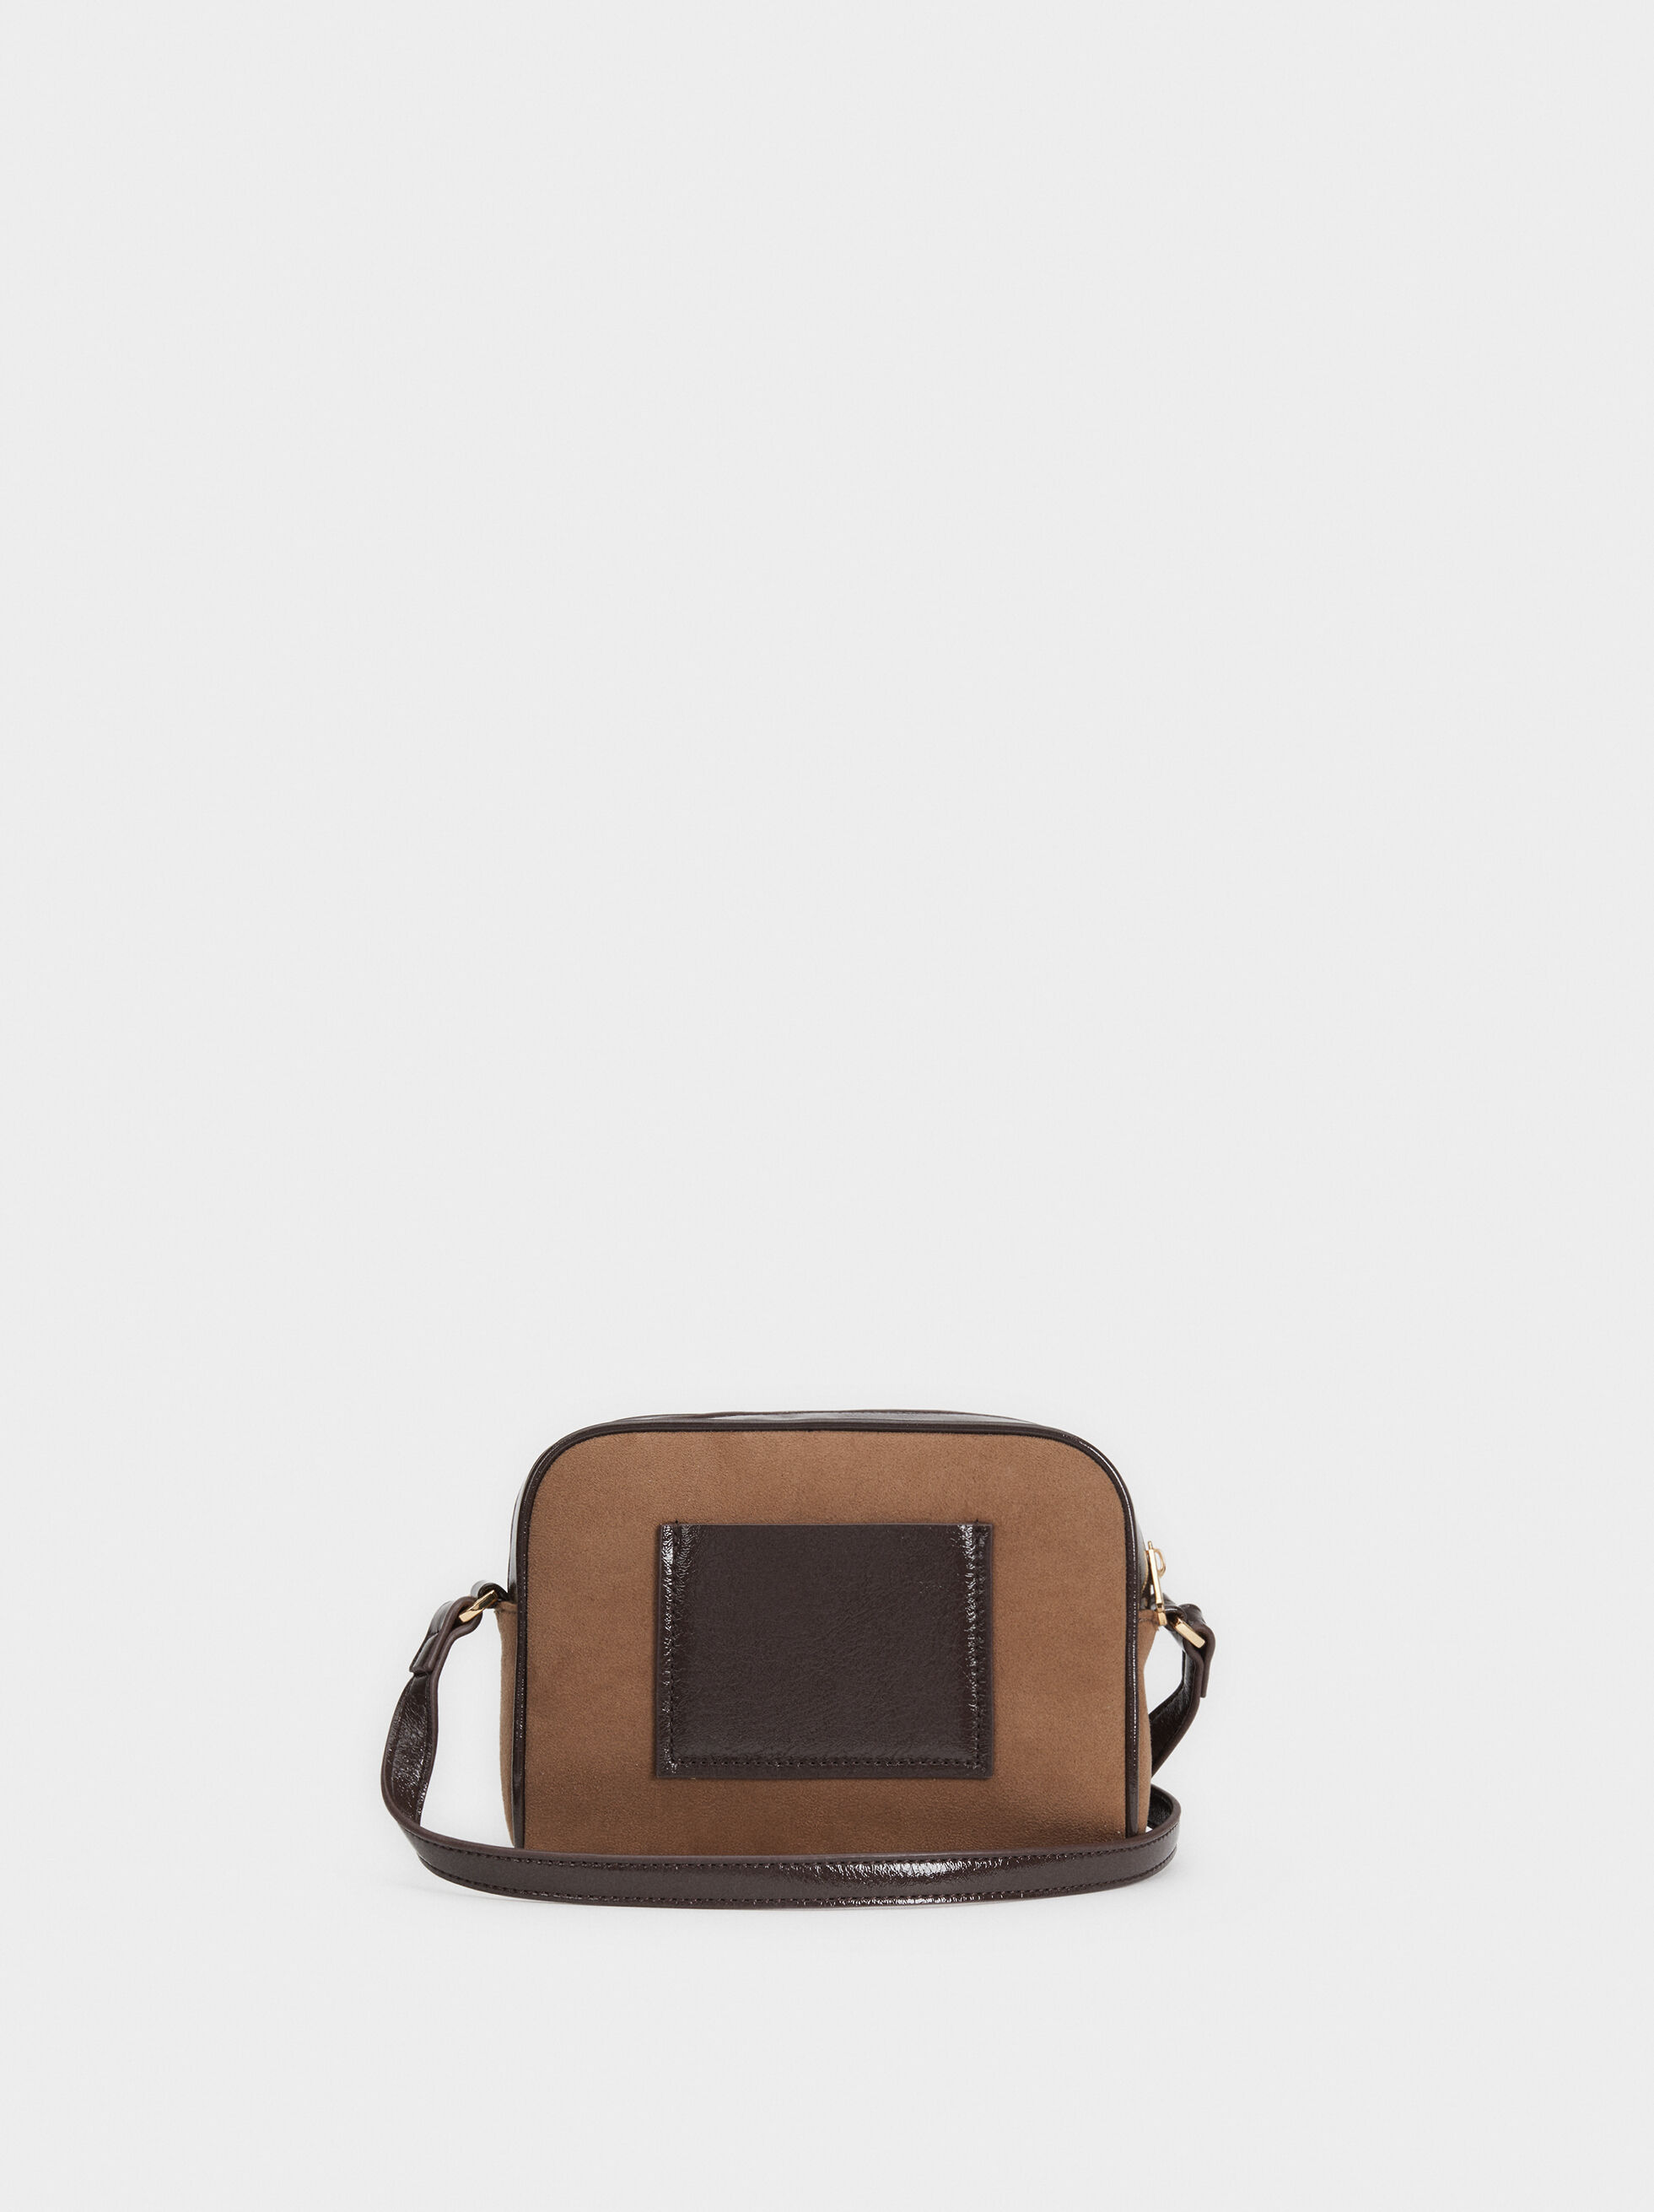 Crossbody Bag With Outer Pocket, Brown, hi-res